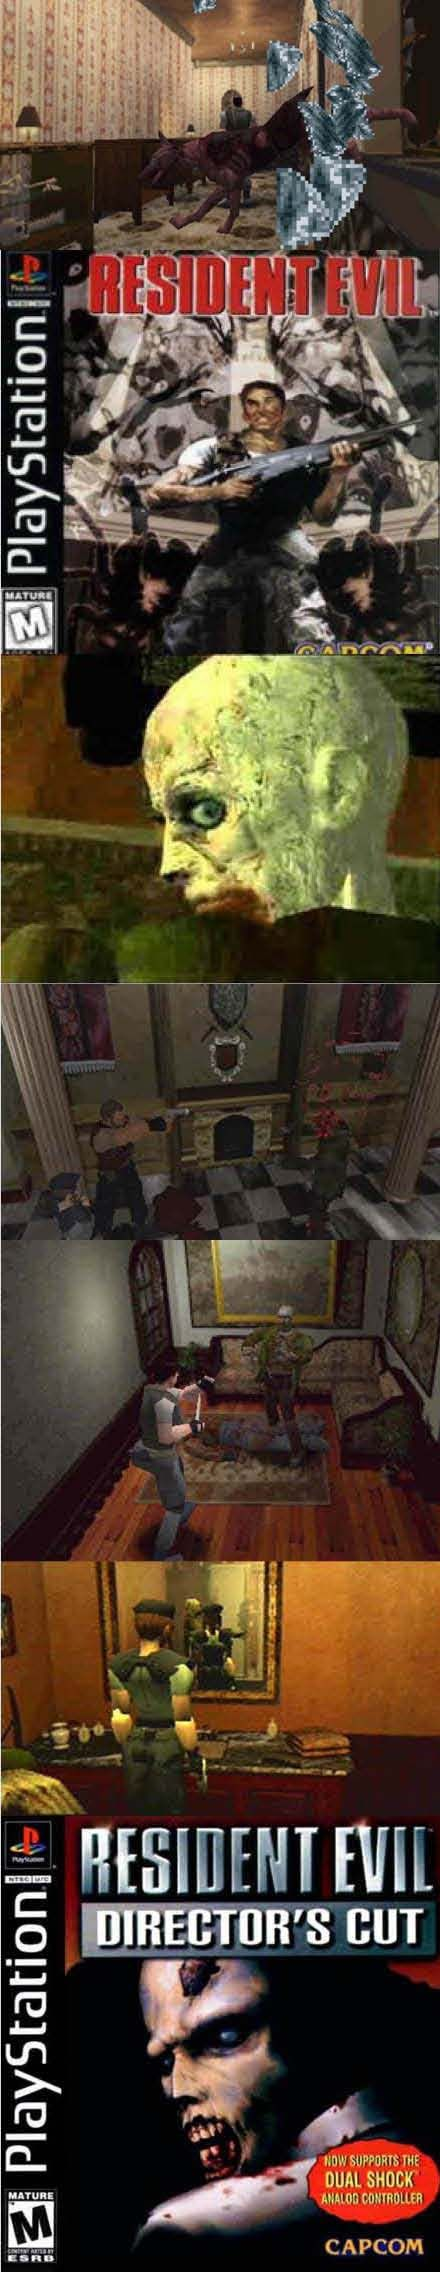 #RetroGamer Thanks to the #PS1 being released this week we got our first #ResidentEvil game http://www.levelgamingground.com/resident-evil-directors-cut-review.html